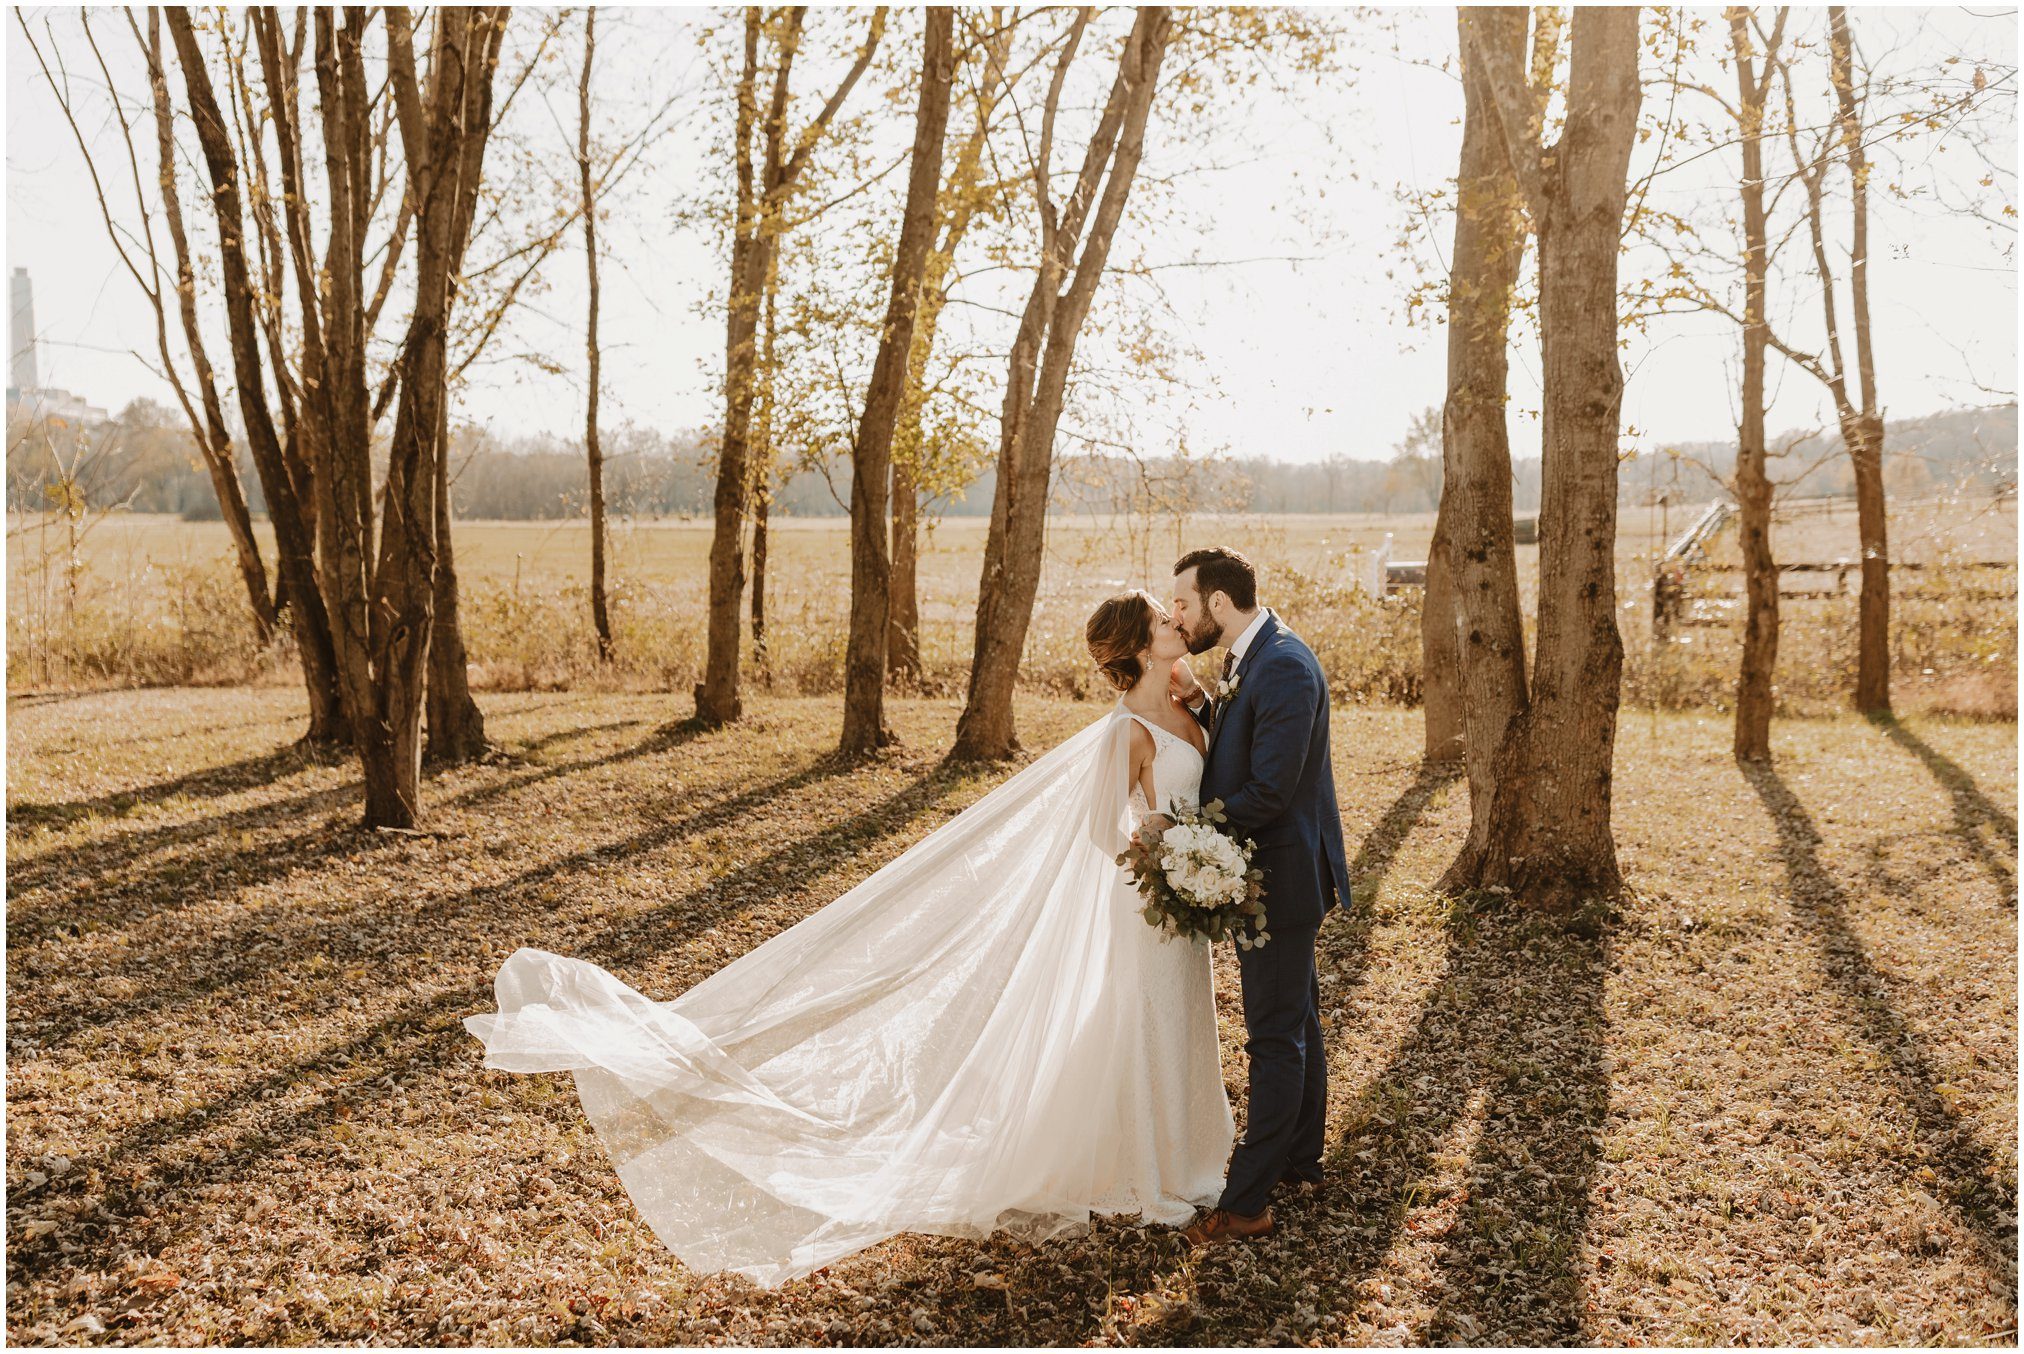 Sonia + Drew on November 11, 2018 ♥ Kate Ann Photography at Riverside on the Potomac (Leesburg, VA)